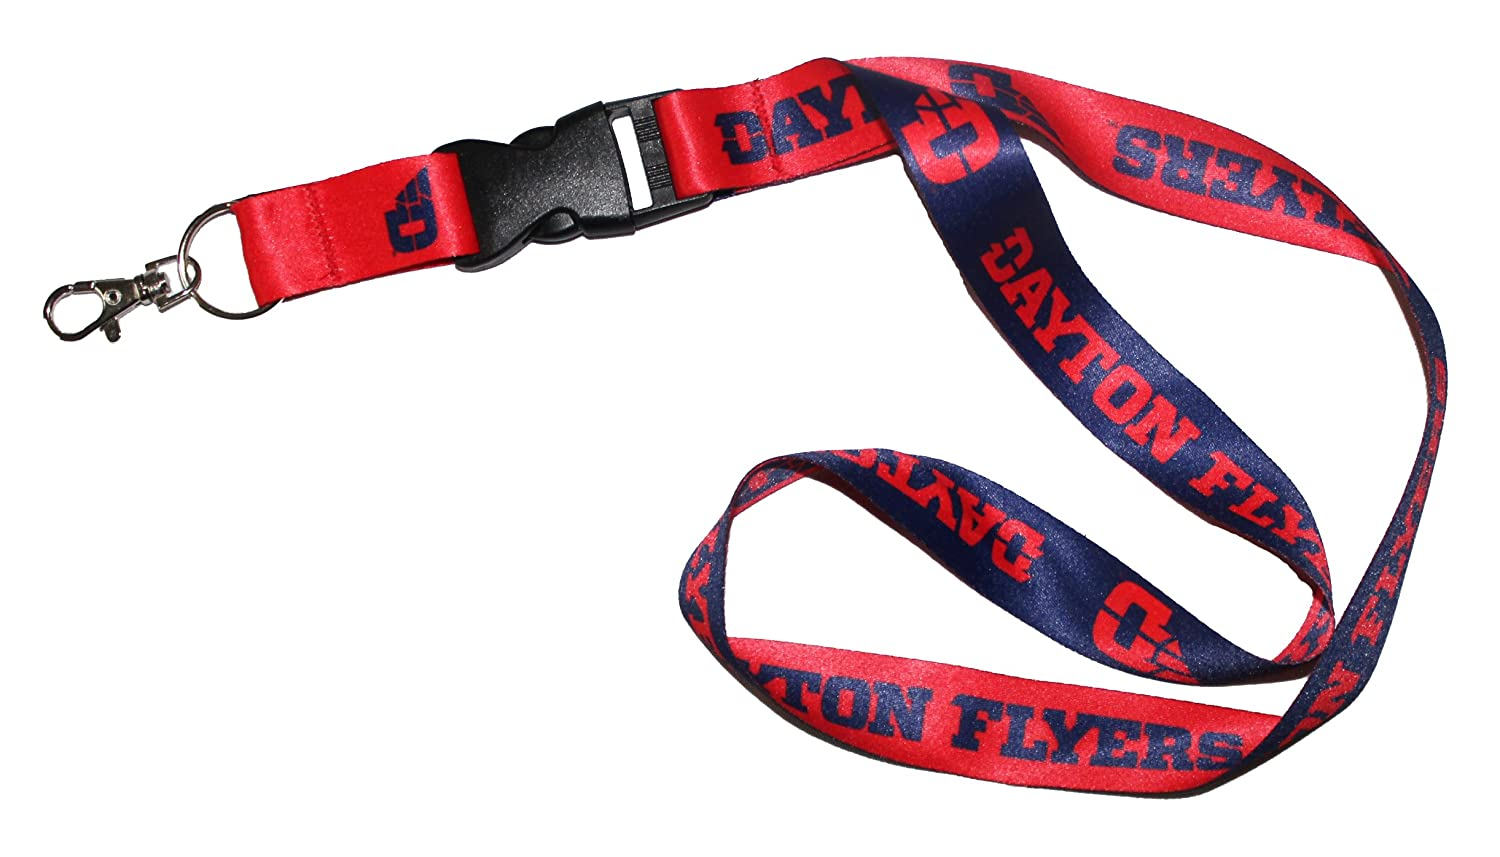 University of Dayton Flyers Premium Lanyard Key Chain 23 inches Long x 1 inch Wide